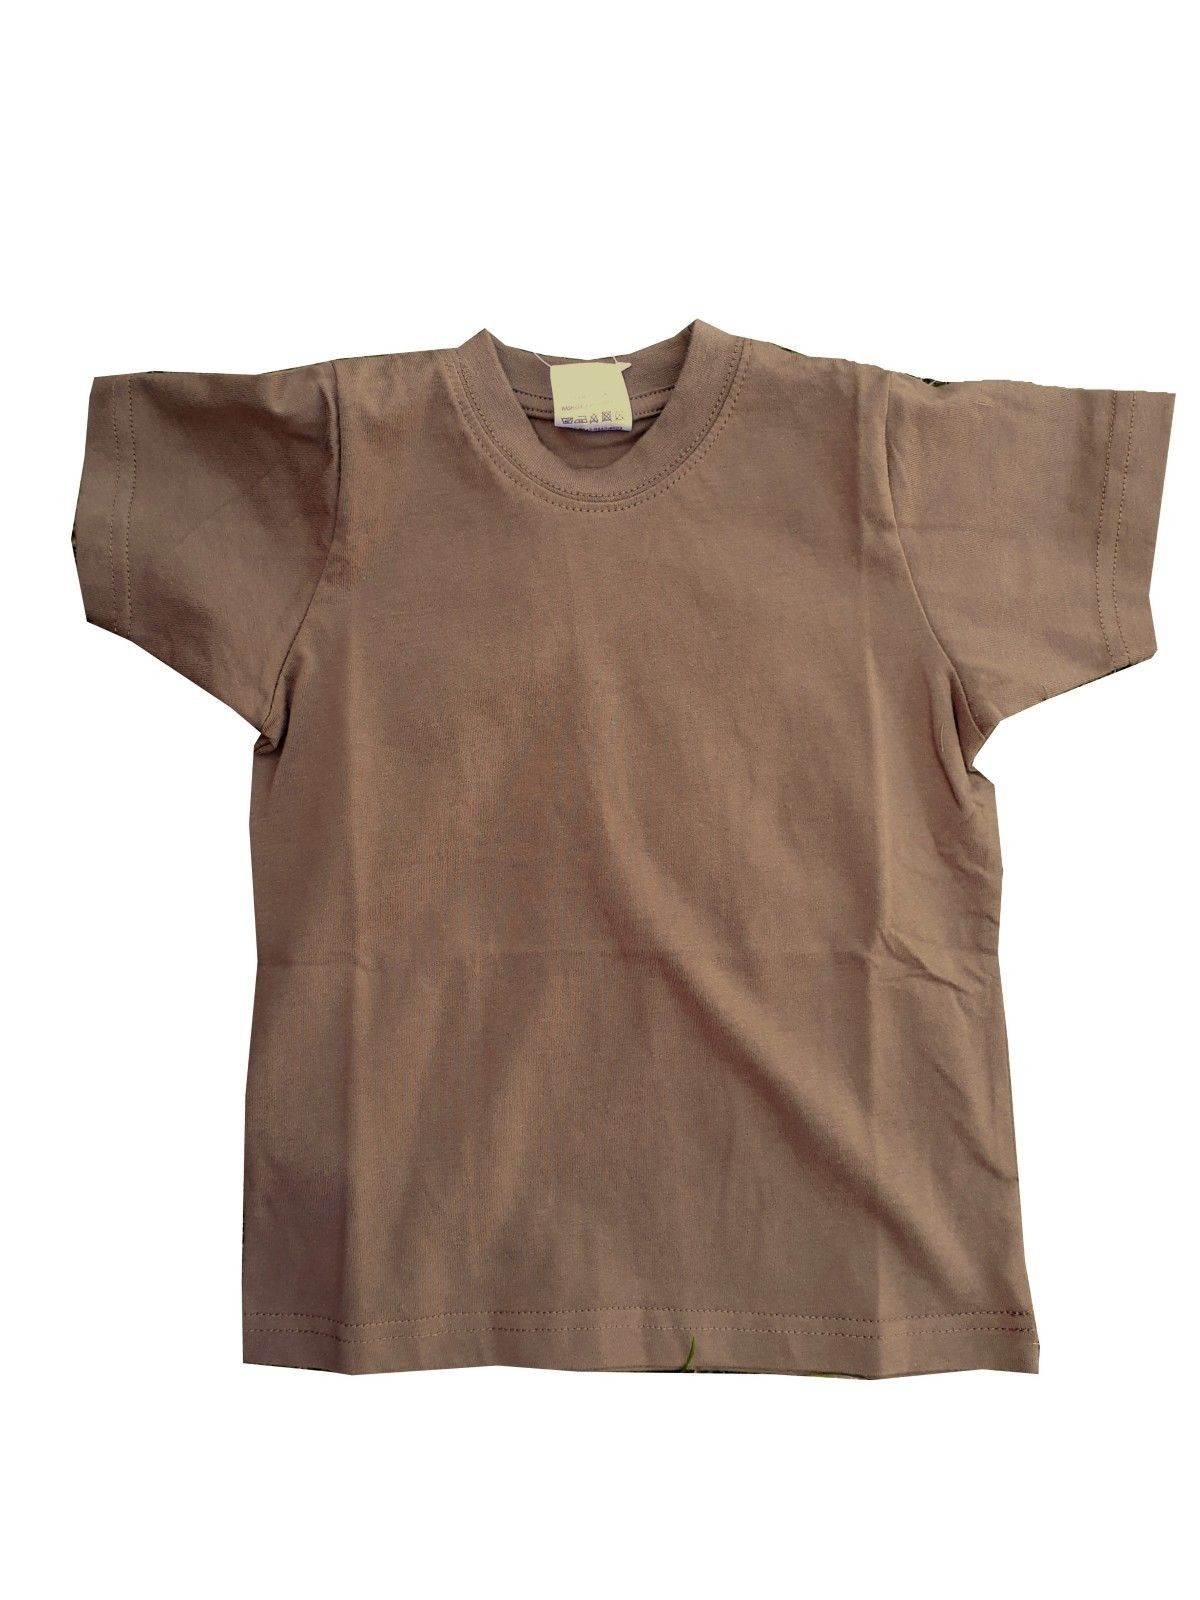 Highlander Kids Coyote Tan Military Style T-Shirt Army Forces Brown Child s 89fa1eb566c